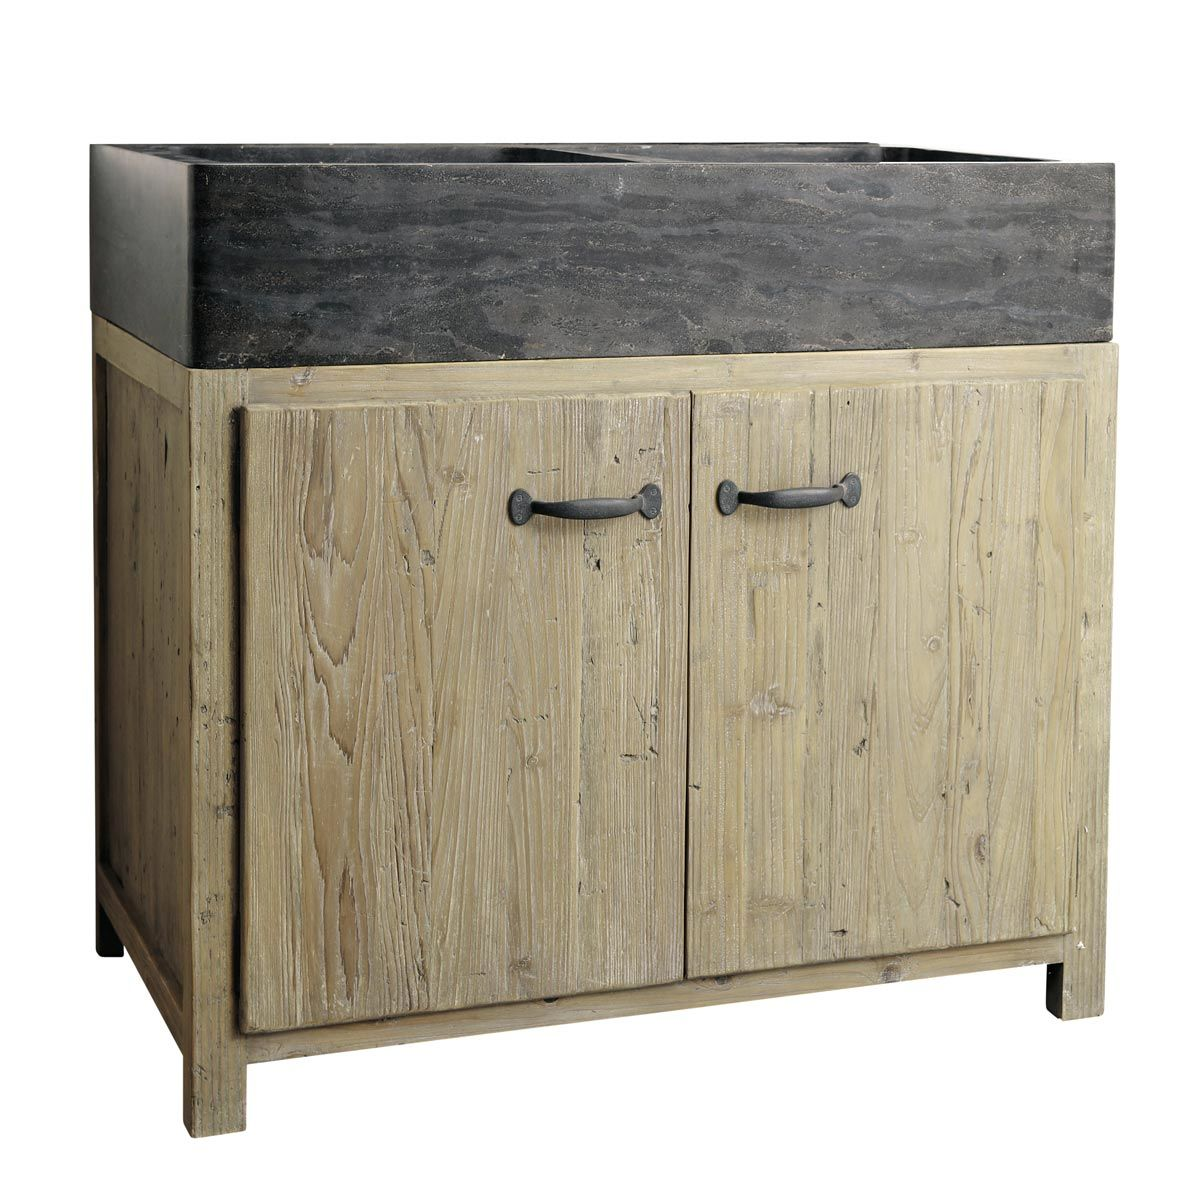 k chenunterschrank aus recyceltem kiefernholz mit sp le maisons du monde. Black Bedroom Furniture Sets. Home Design Ideas